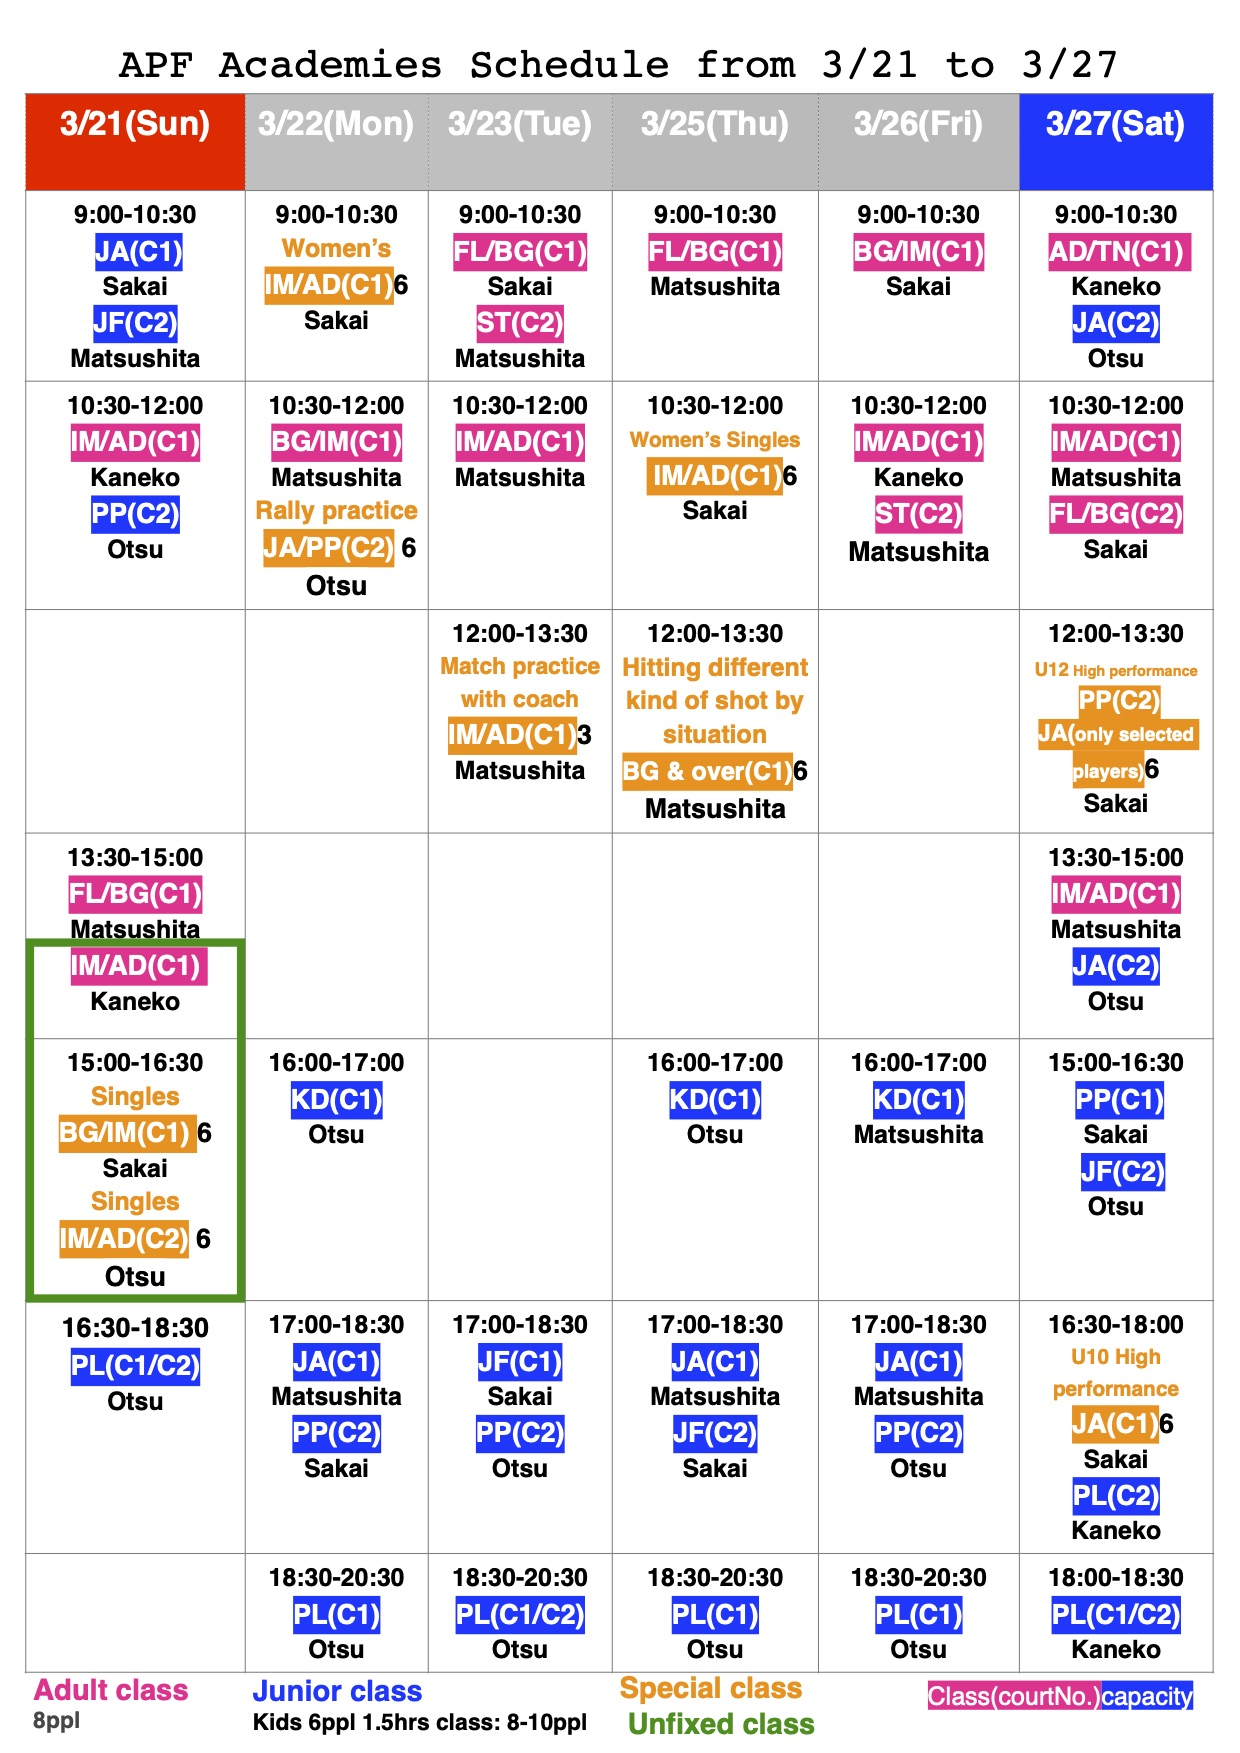 20210321_APF lesson schedule with coach